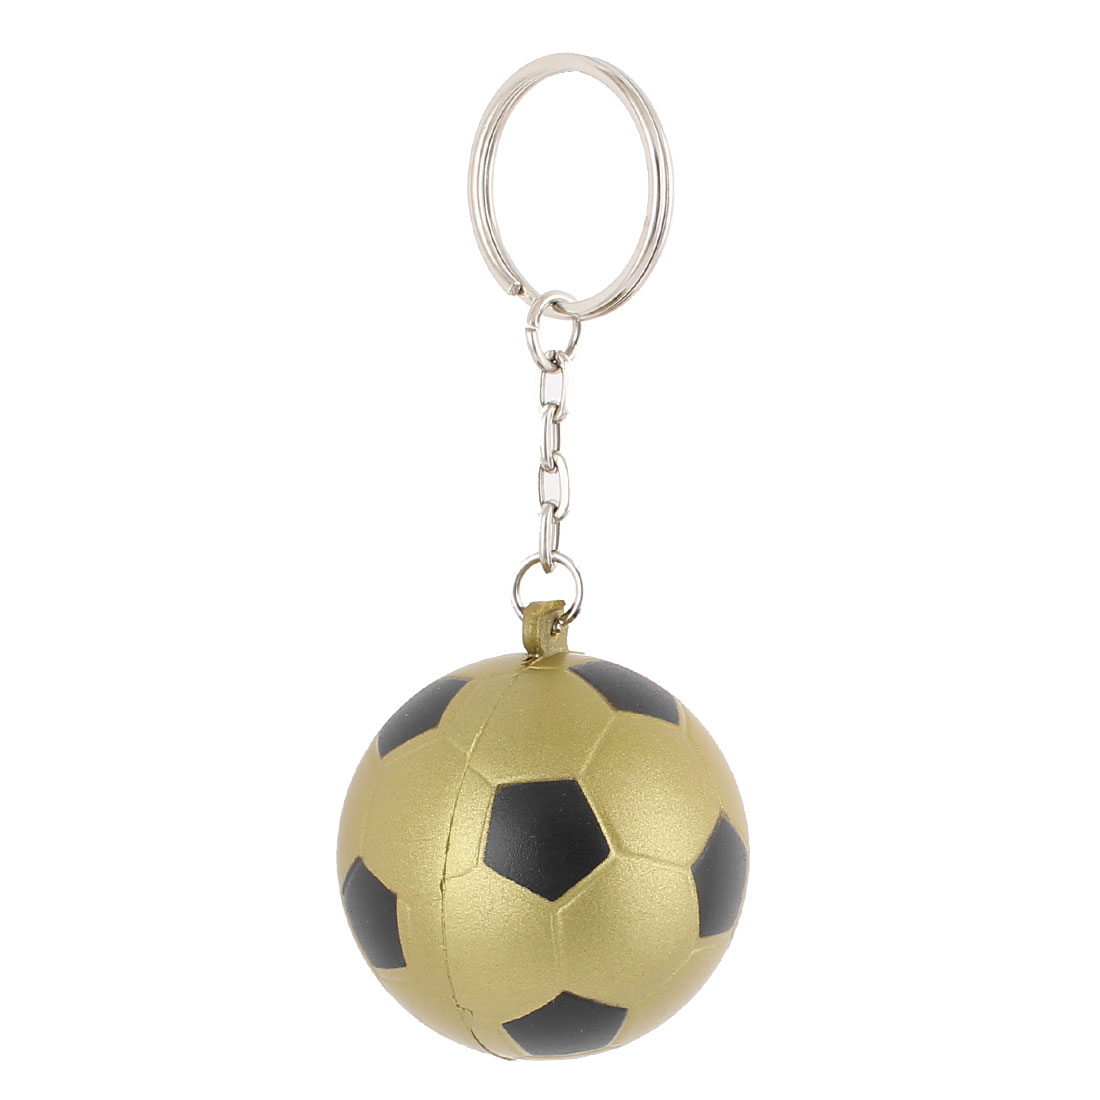 Rubber Soccer Shaped Pendant Split Ring Keychain Keyring Key Holder Brown Black